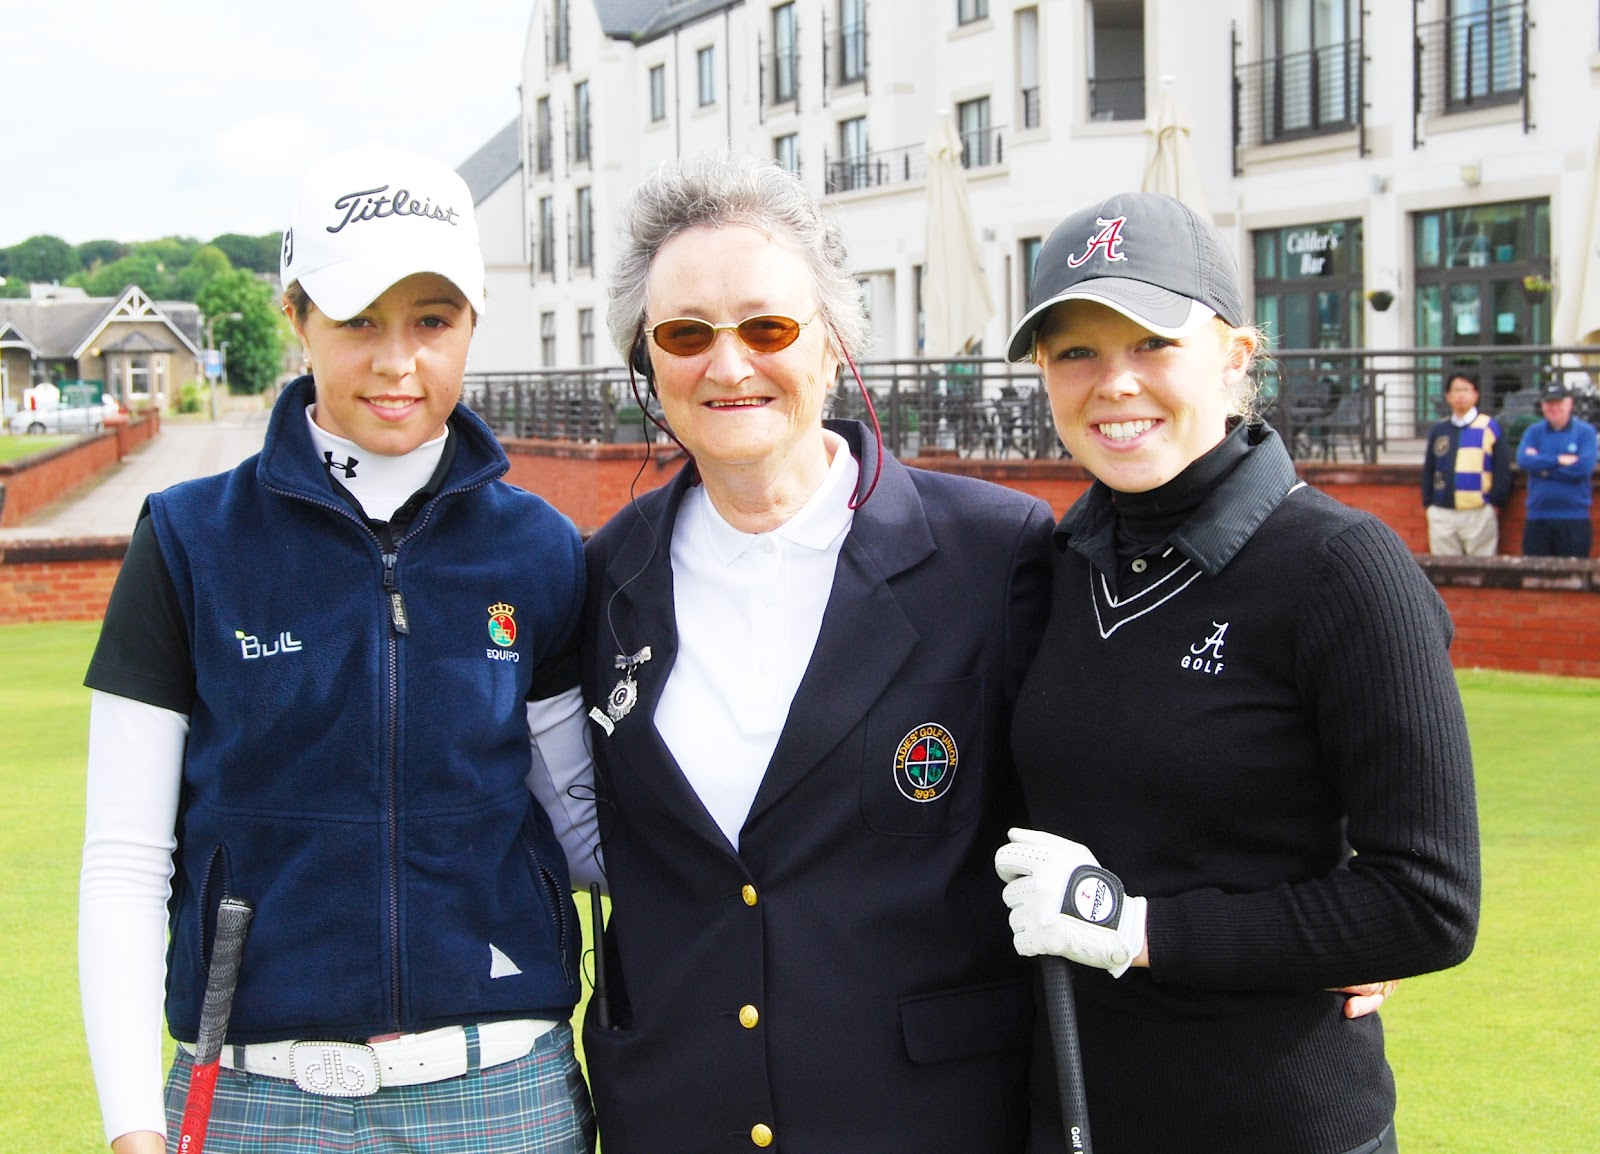 This afternoon's 109th British women's open amateur championship final will ...